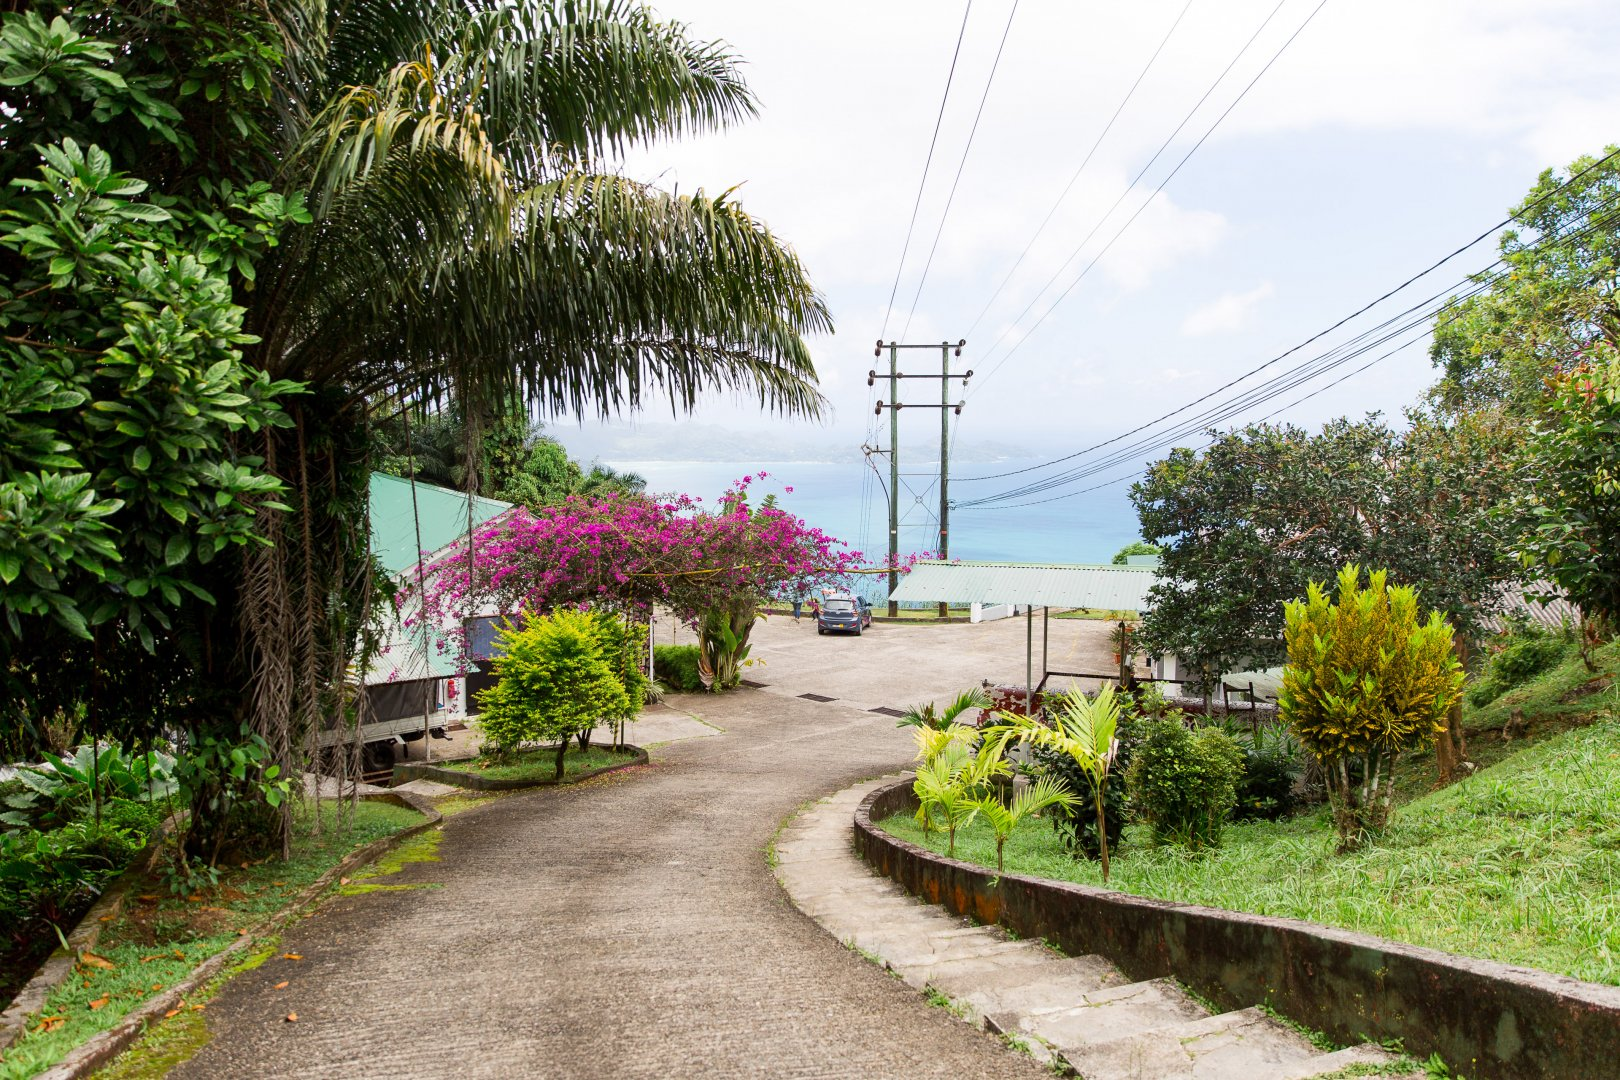 Vegetation Property Real estate Botany Tree Plant House Hill station Walkway Road Rural area Vacation Flower Tourism Building Resort Residential area Landscape Tropics Home Coastal and oceanic landforms Garden Trail Hill Street Coast